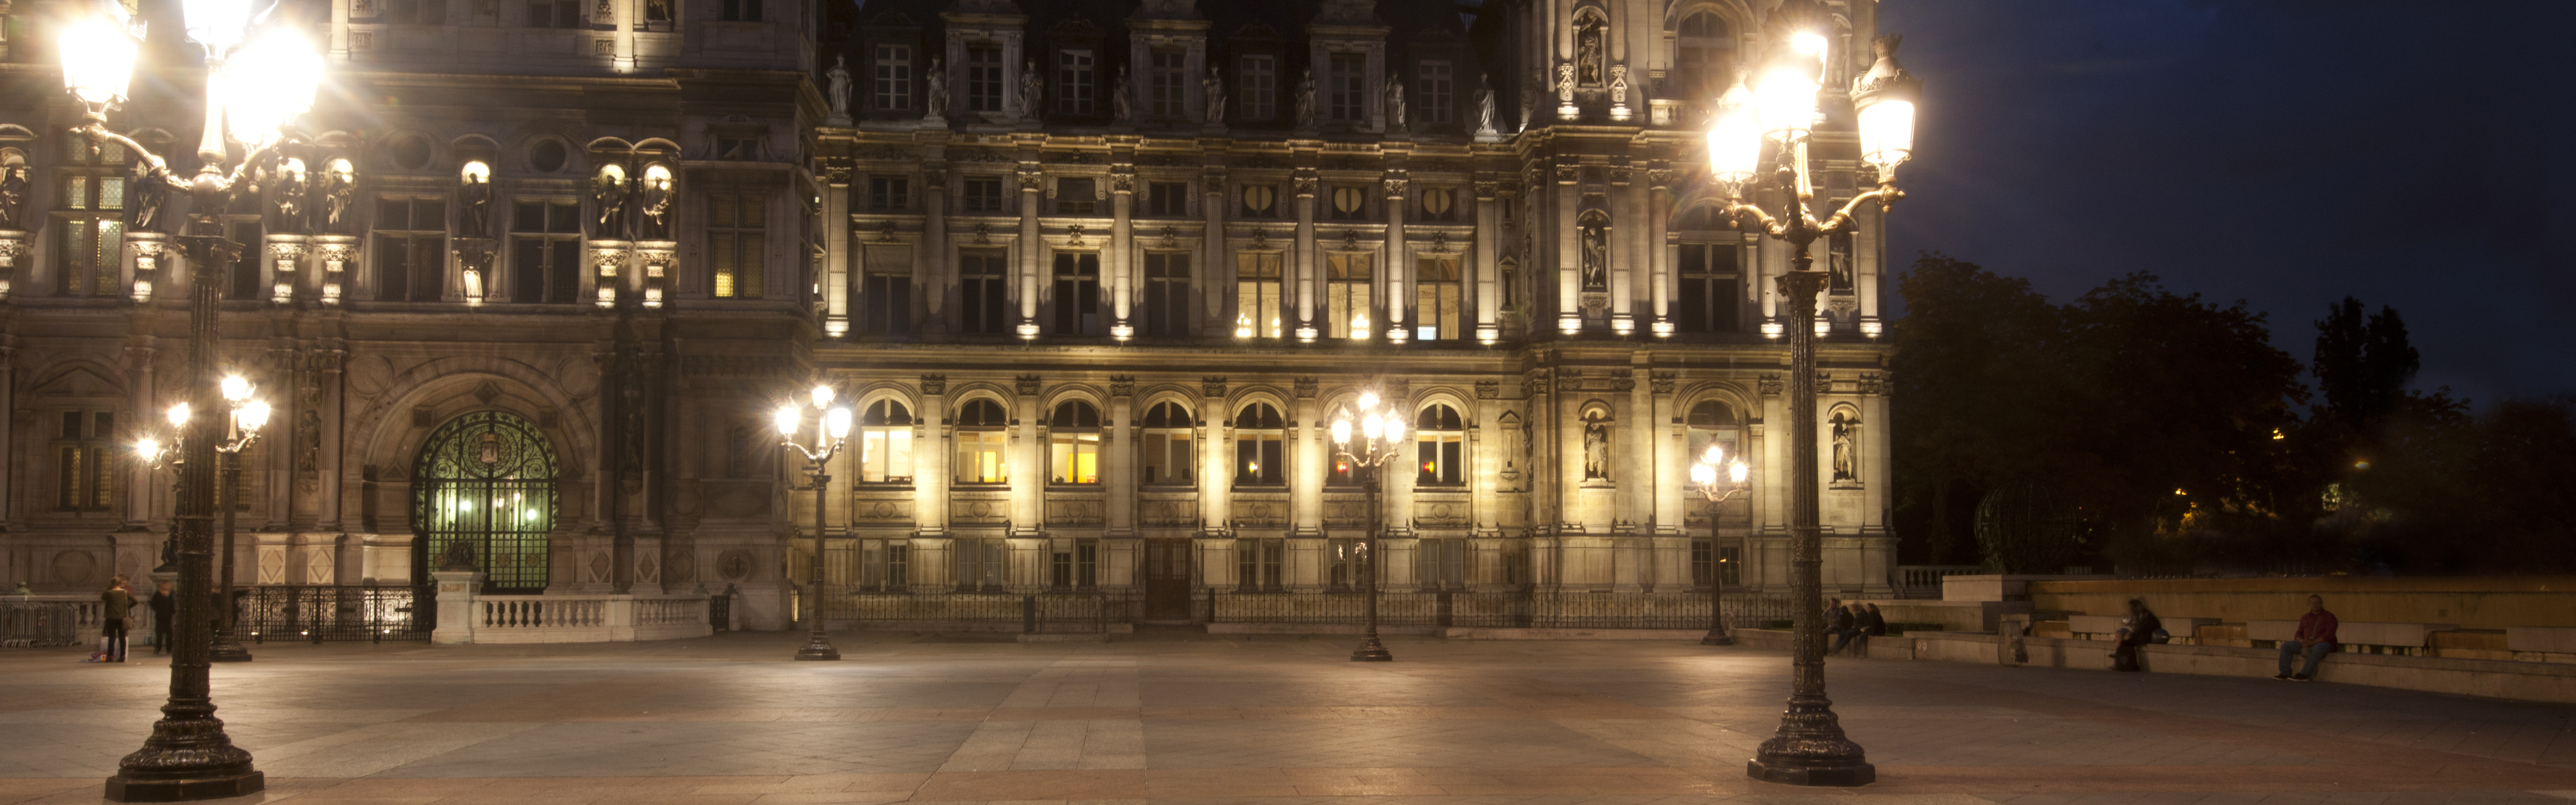 mairie-paris-3840x1200